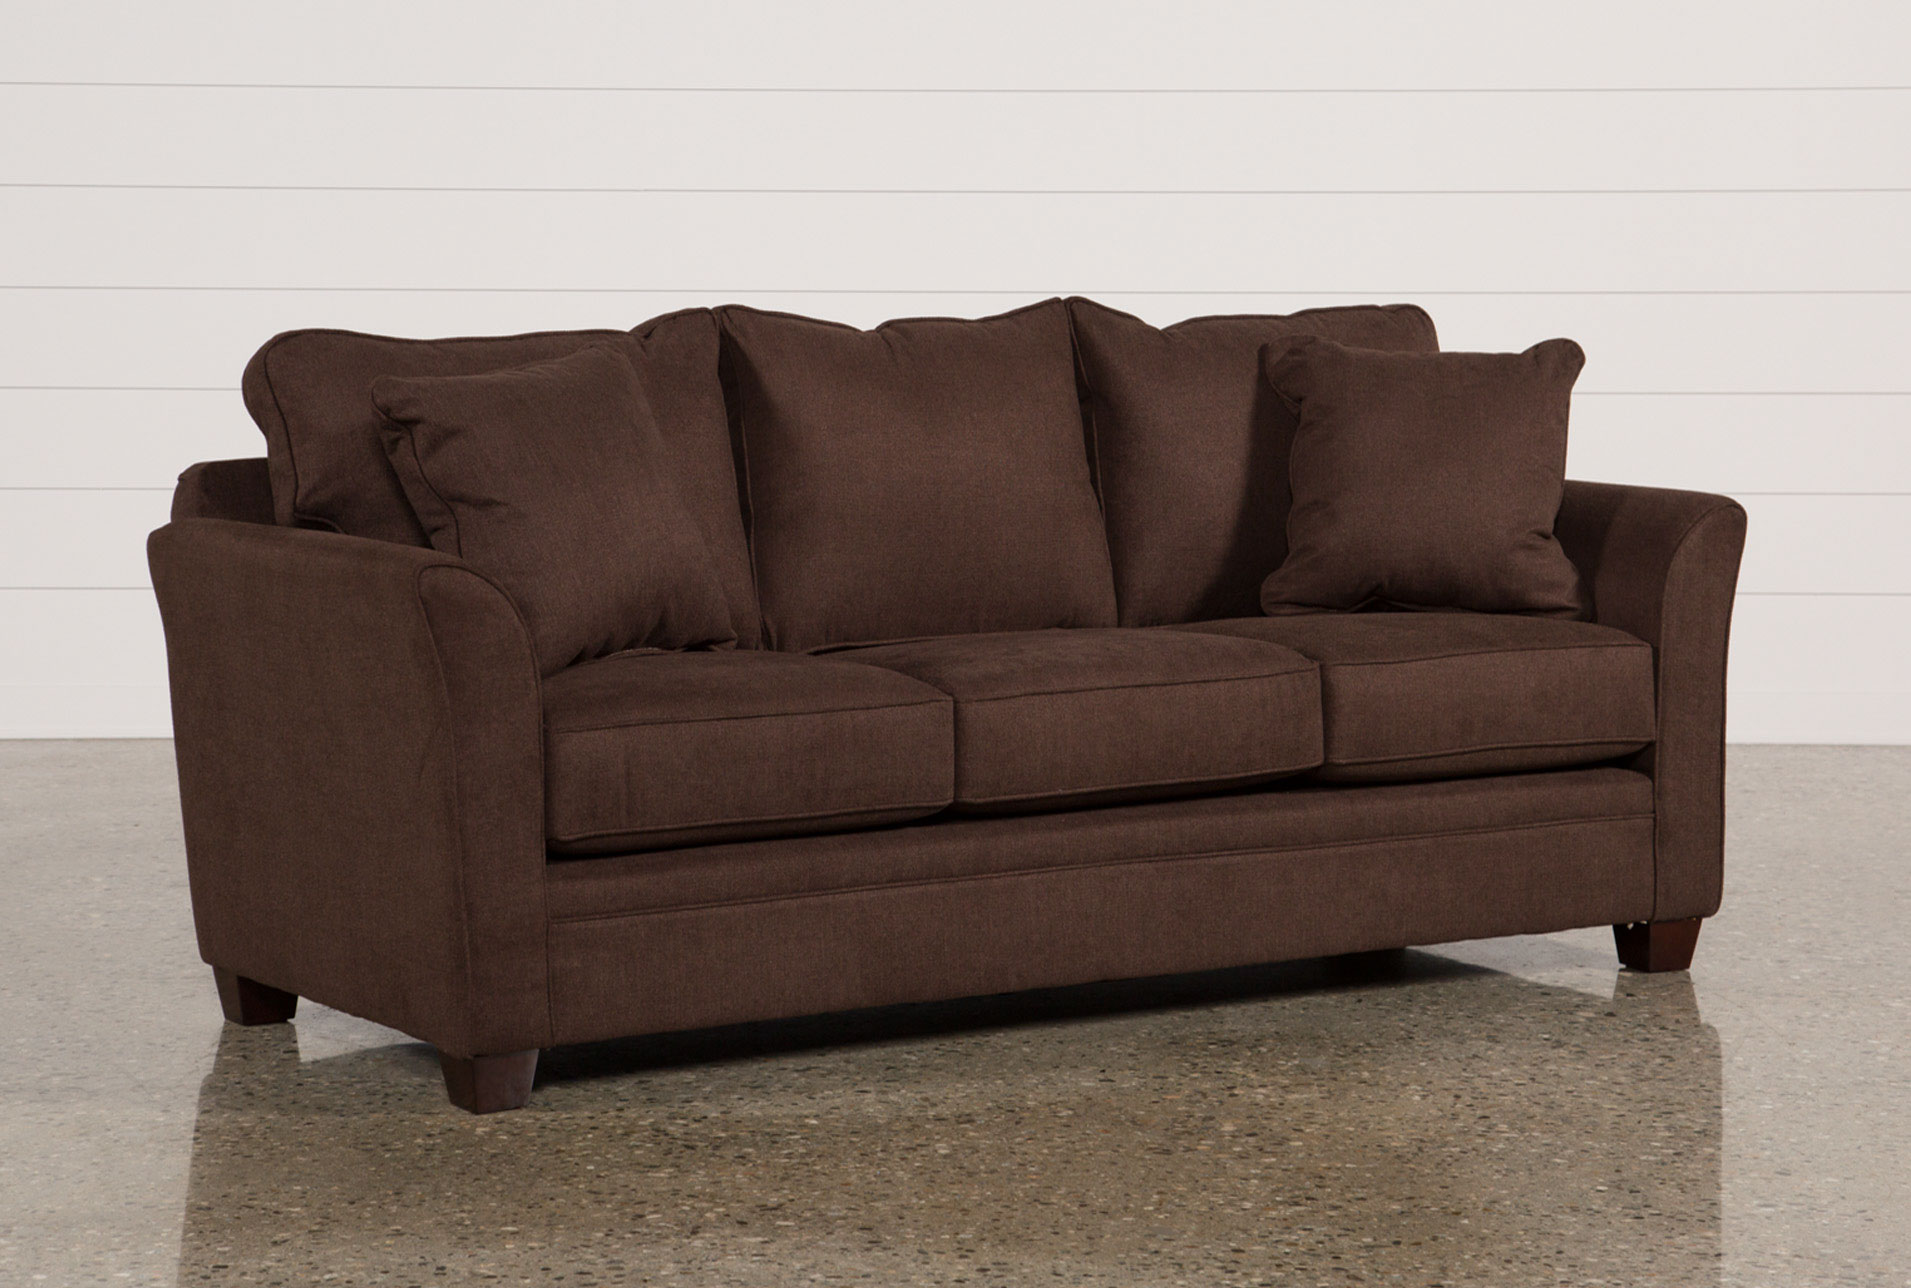 Charmant Alex Chocolate Sofa   360